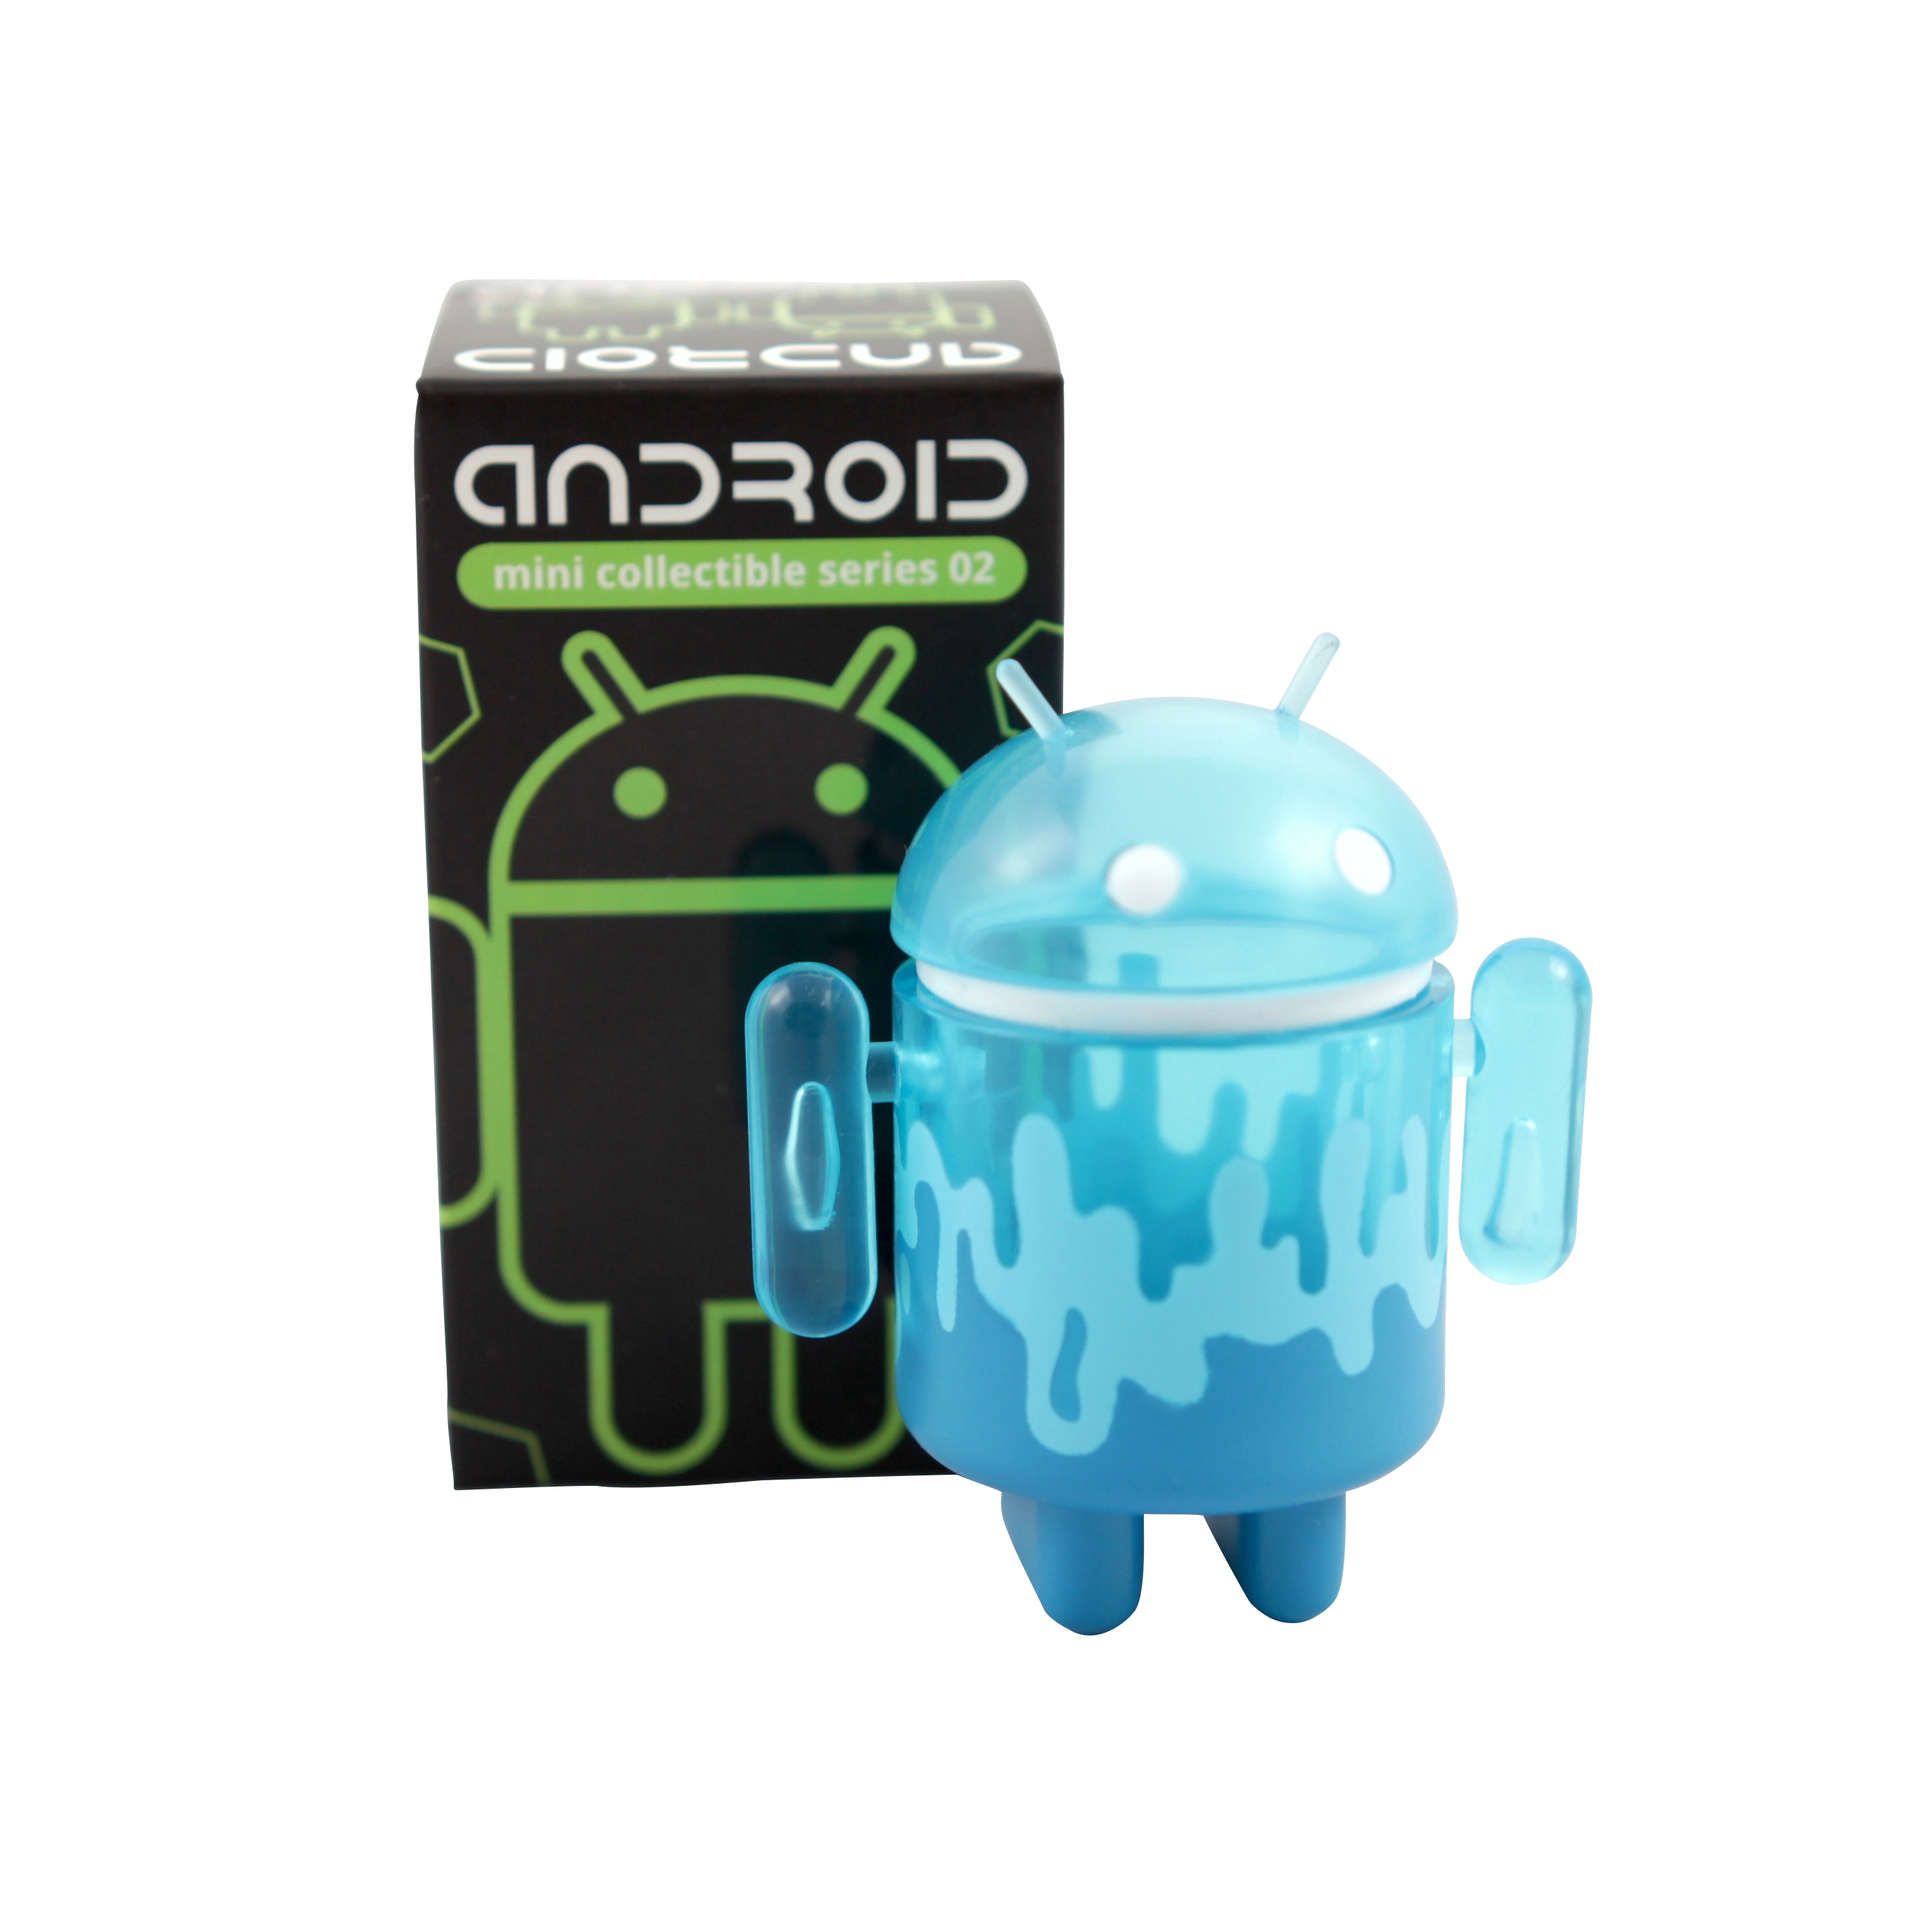 Android Figurine and Box